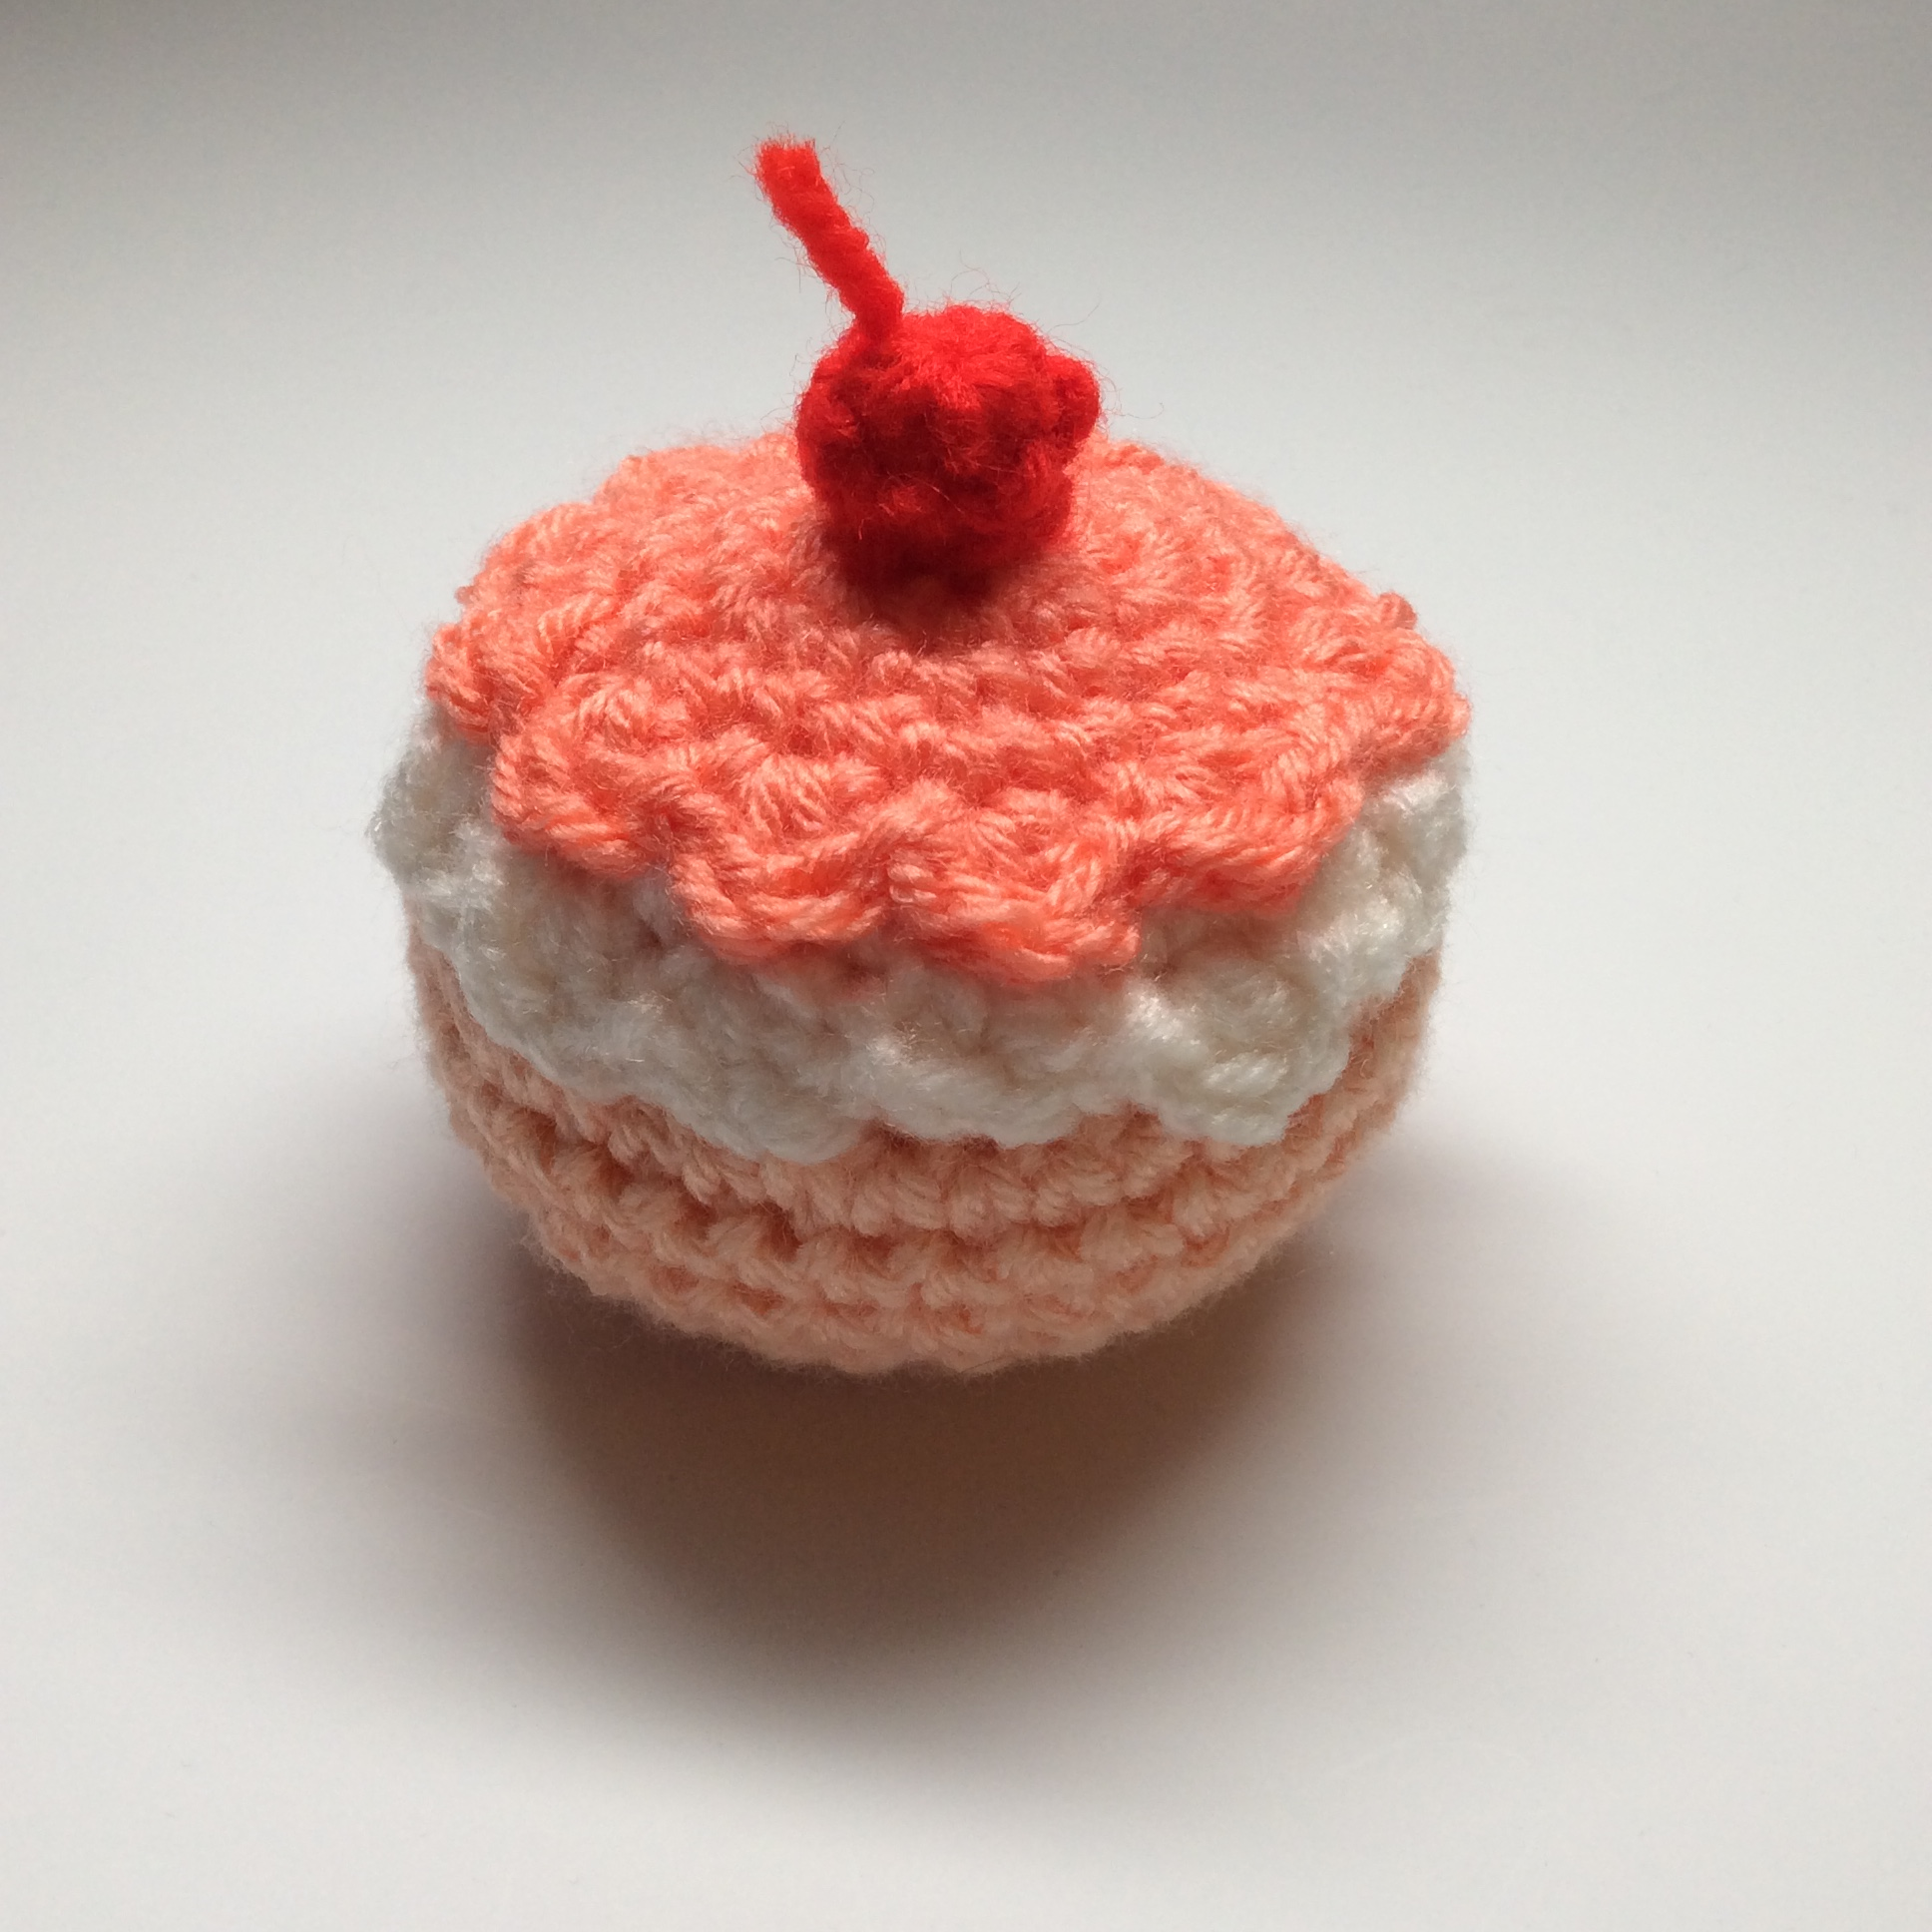 So adorable, with a cherry on top!